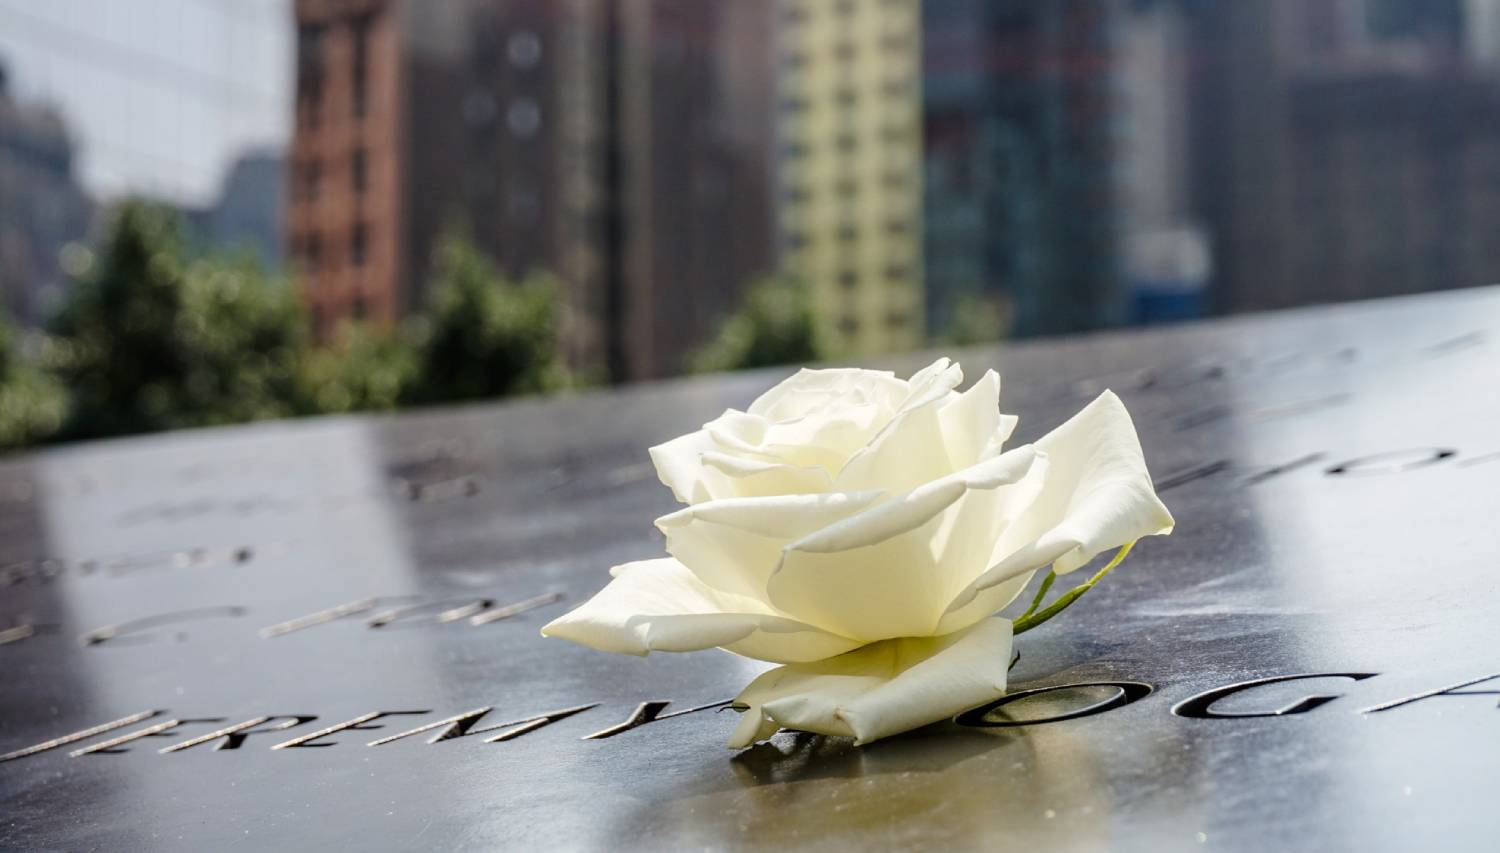 National September 11 Memorial & Museum - Things To Do In New York City